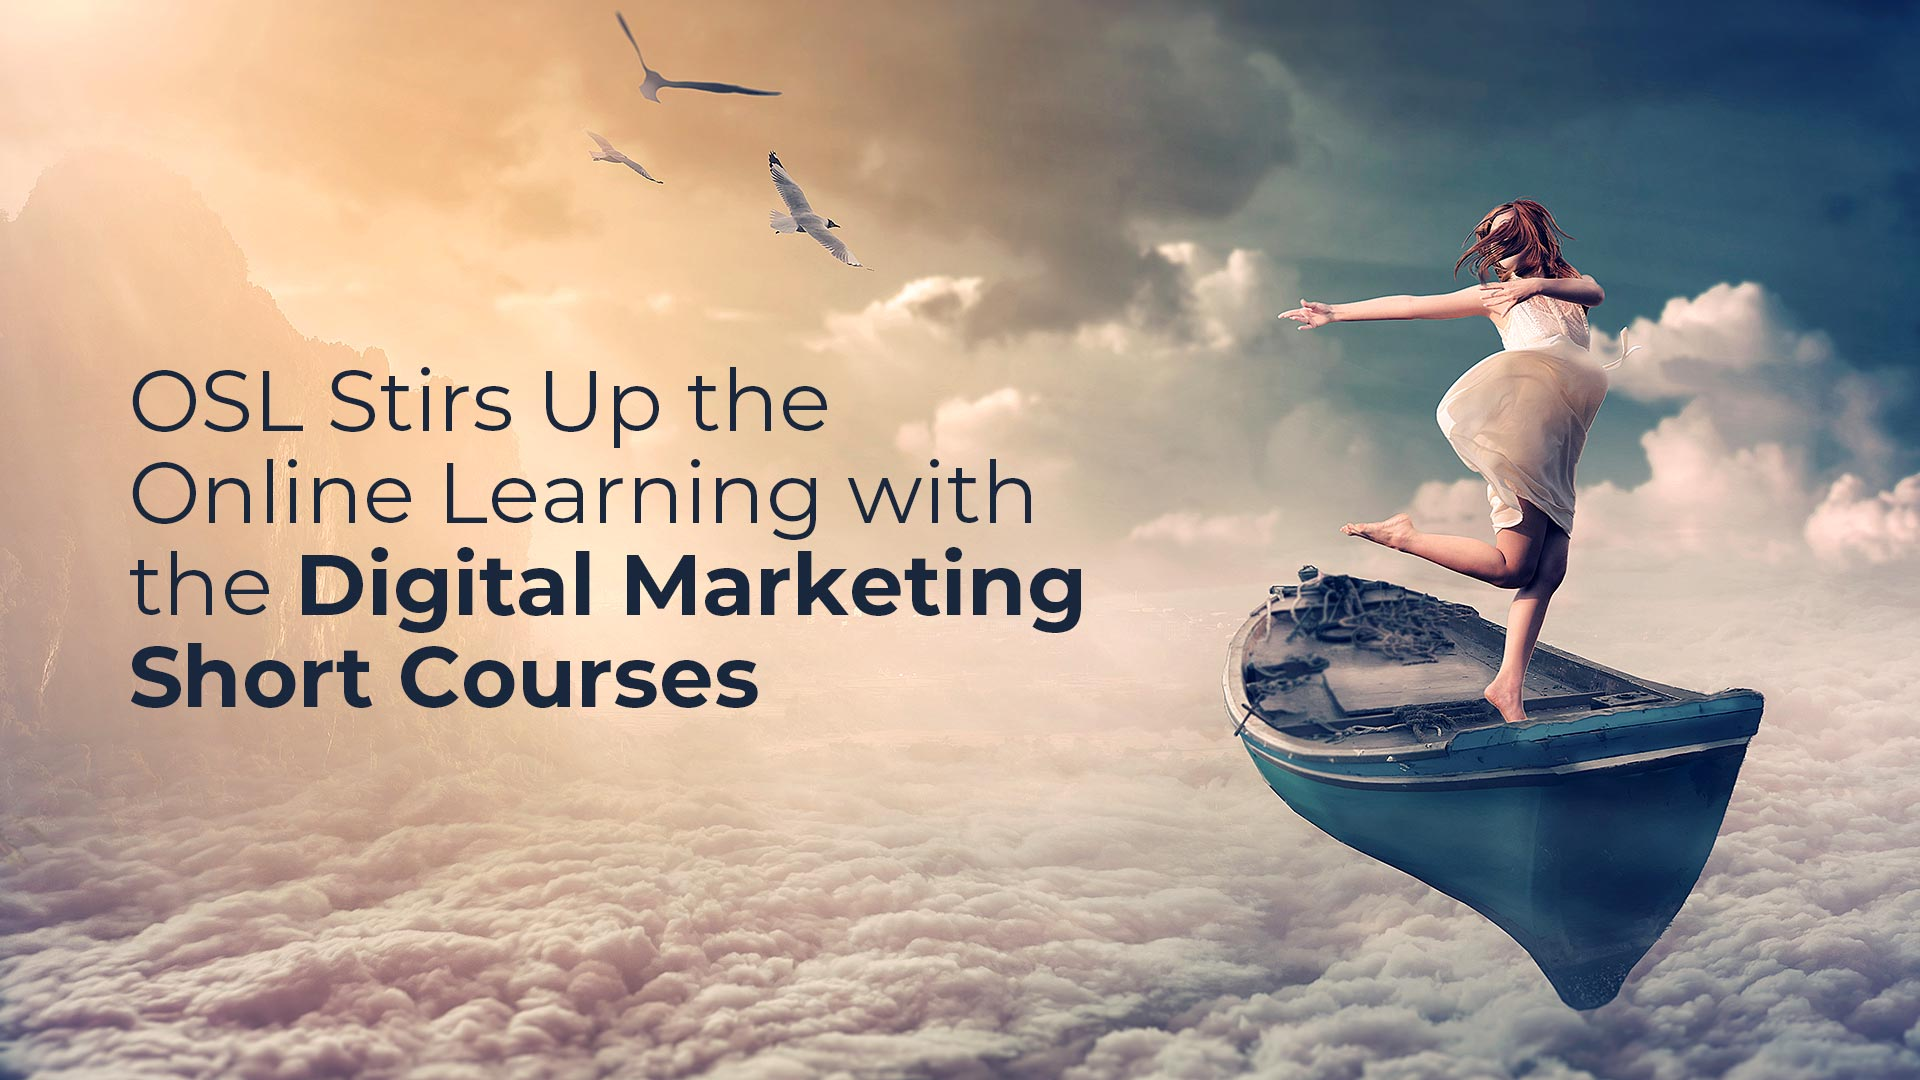 OSL Stirs Up the Online Learning with the Digital Marketing Short Courses